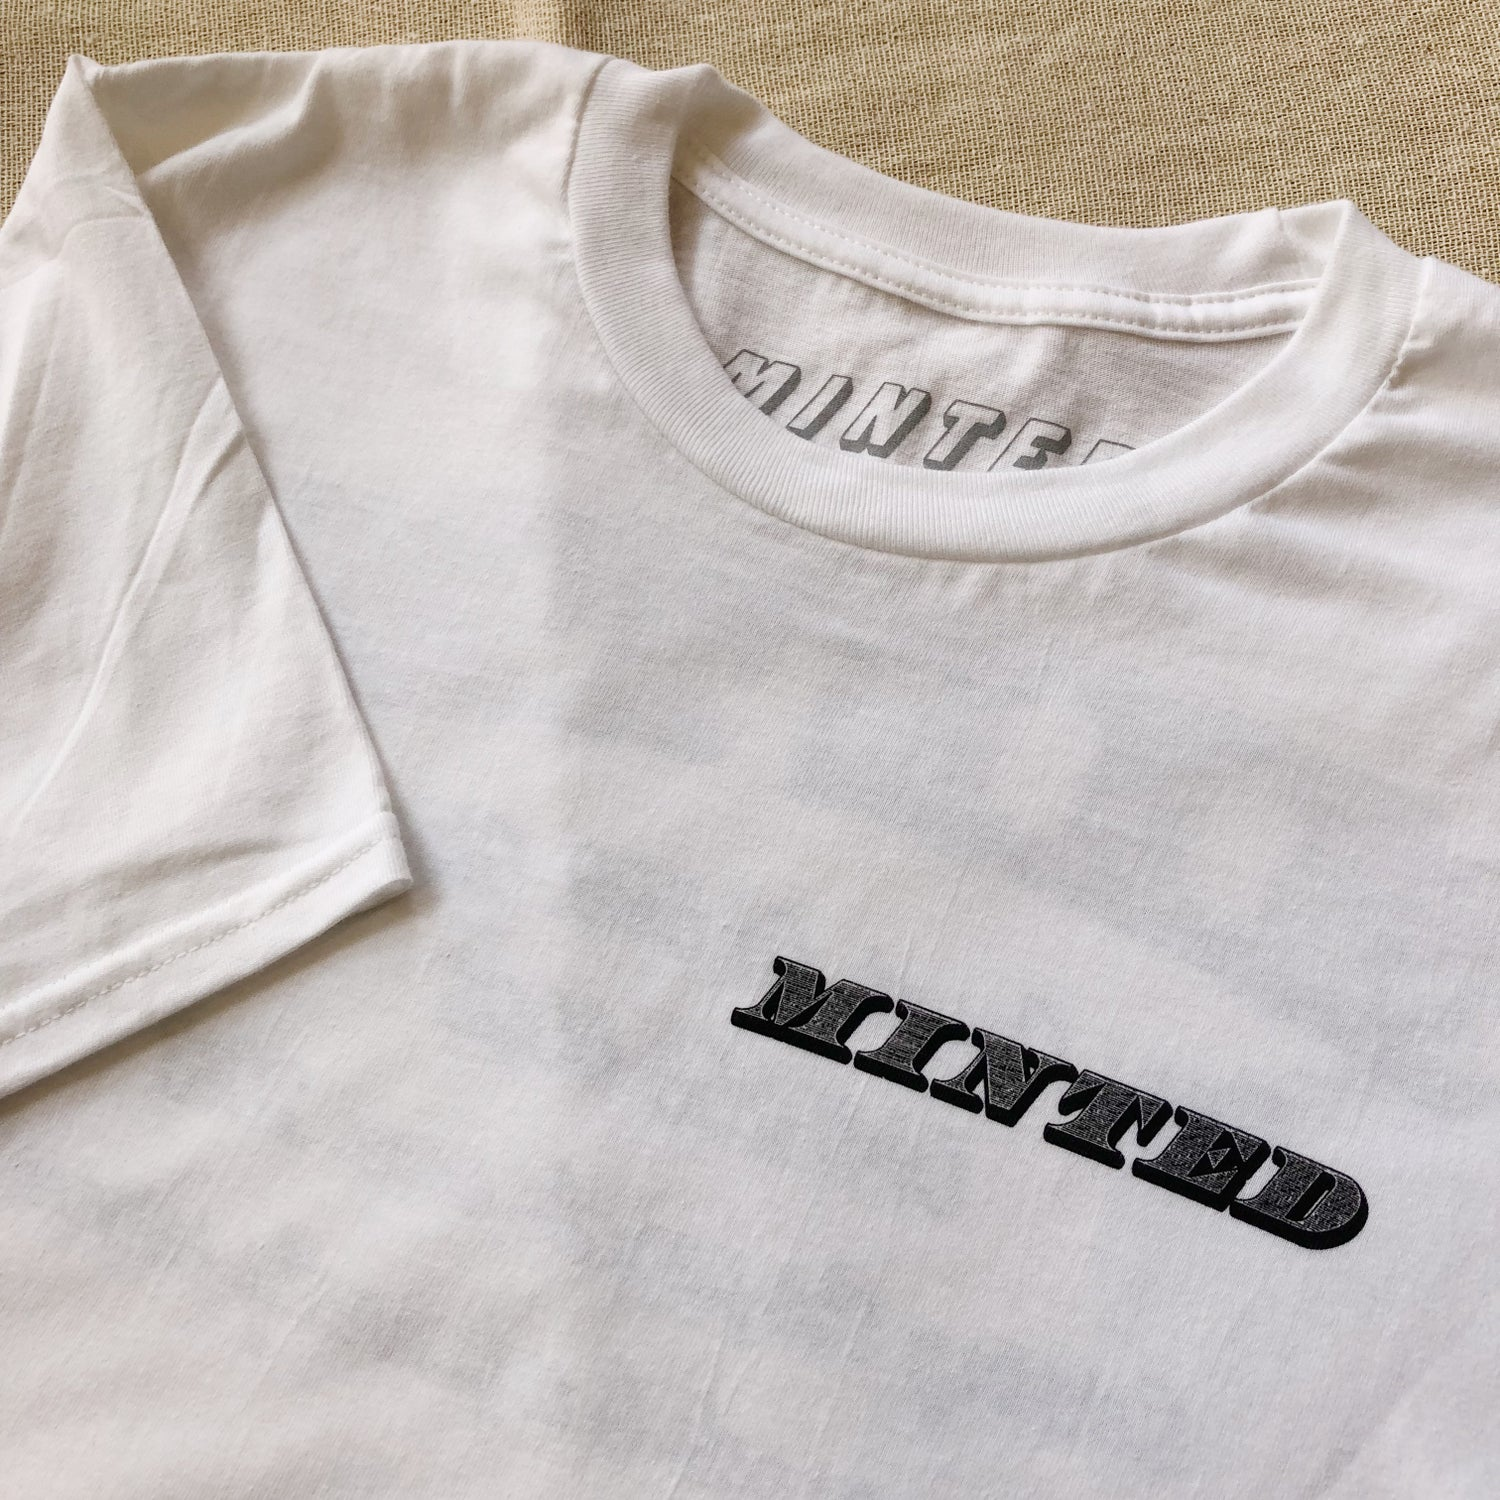 Image of Minted Shop T-shirt